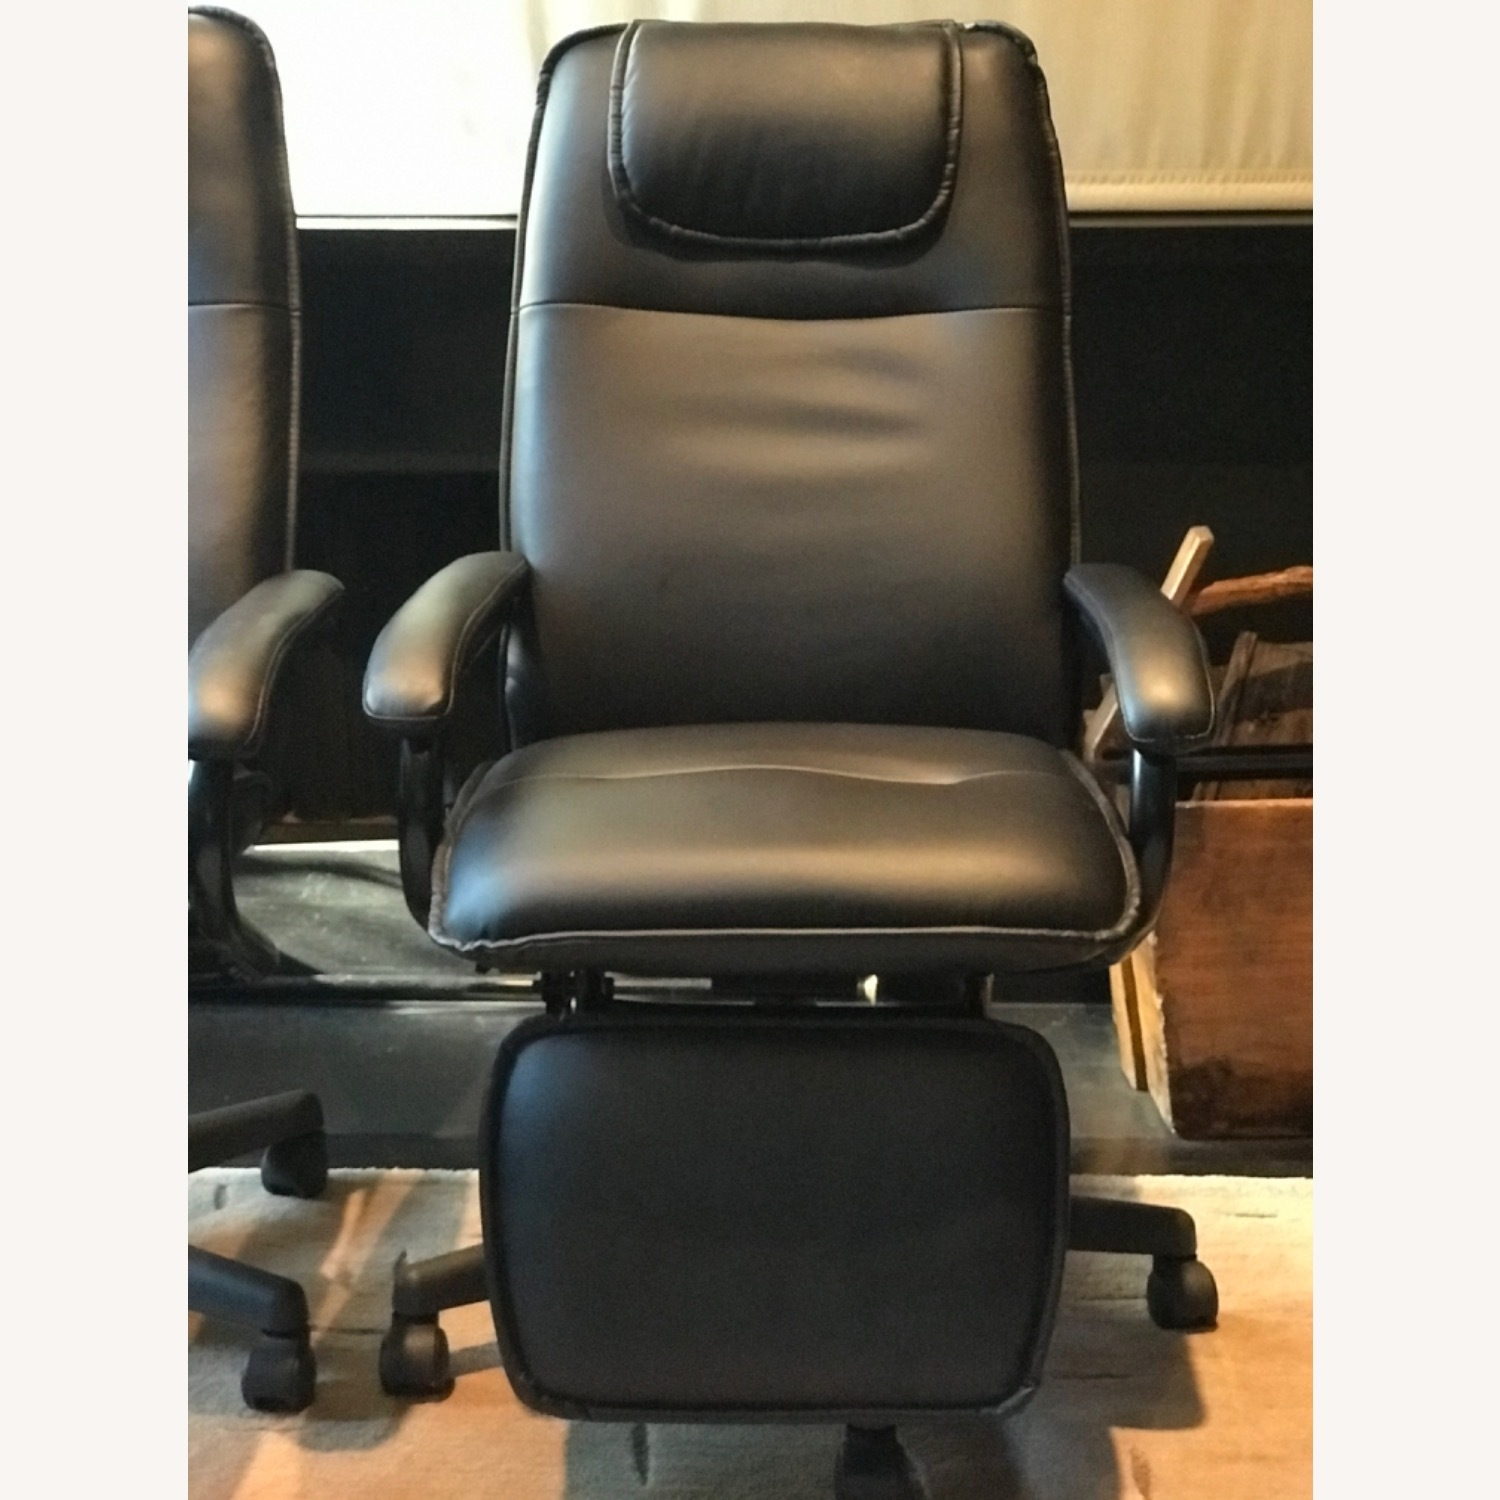 Reclining Swivel Chairs with Foot Rests - image-1